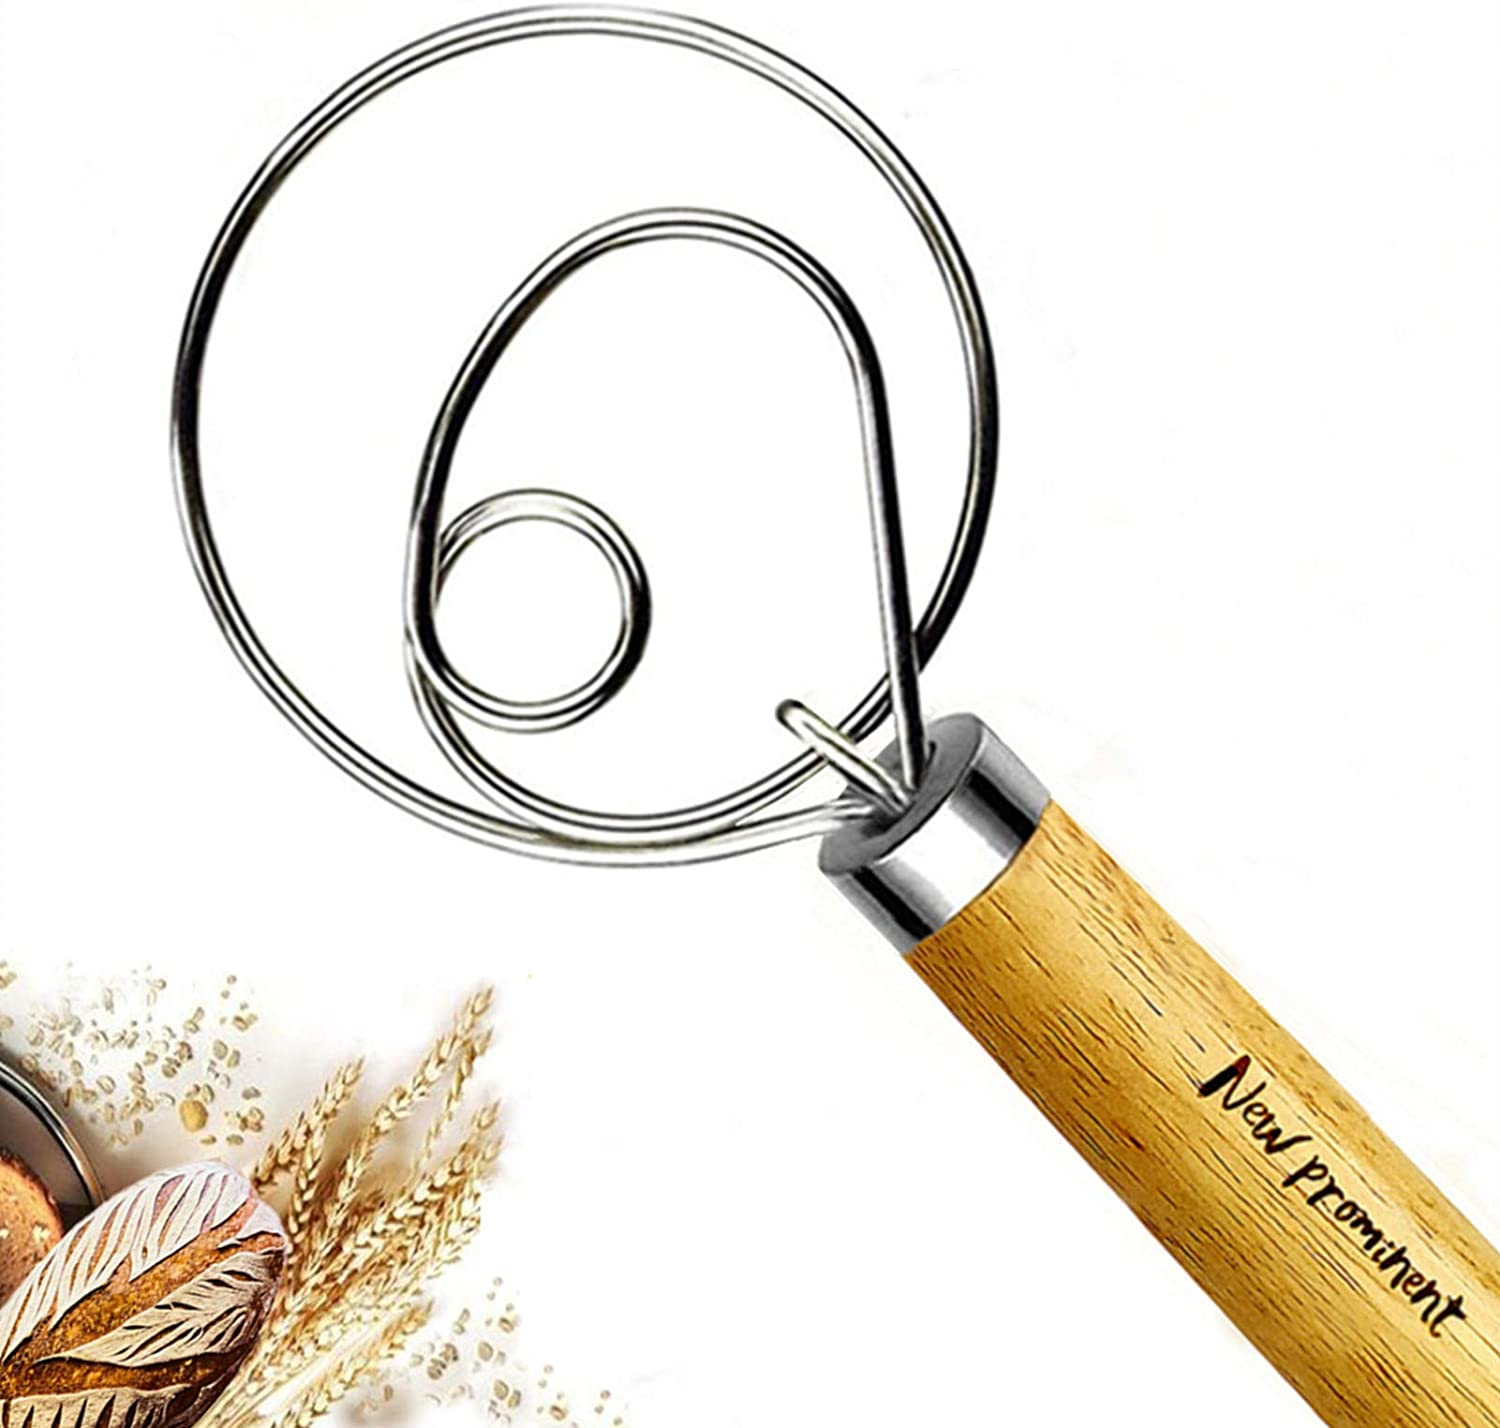 Details about  /Danish Dough Whisk Stainless Steel Egg Beater with Wooden Handle for Kitchen